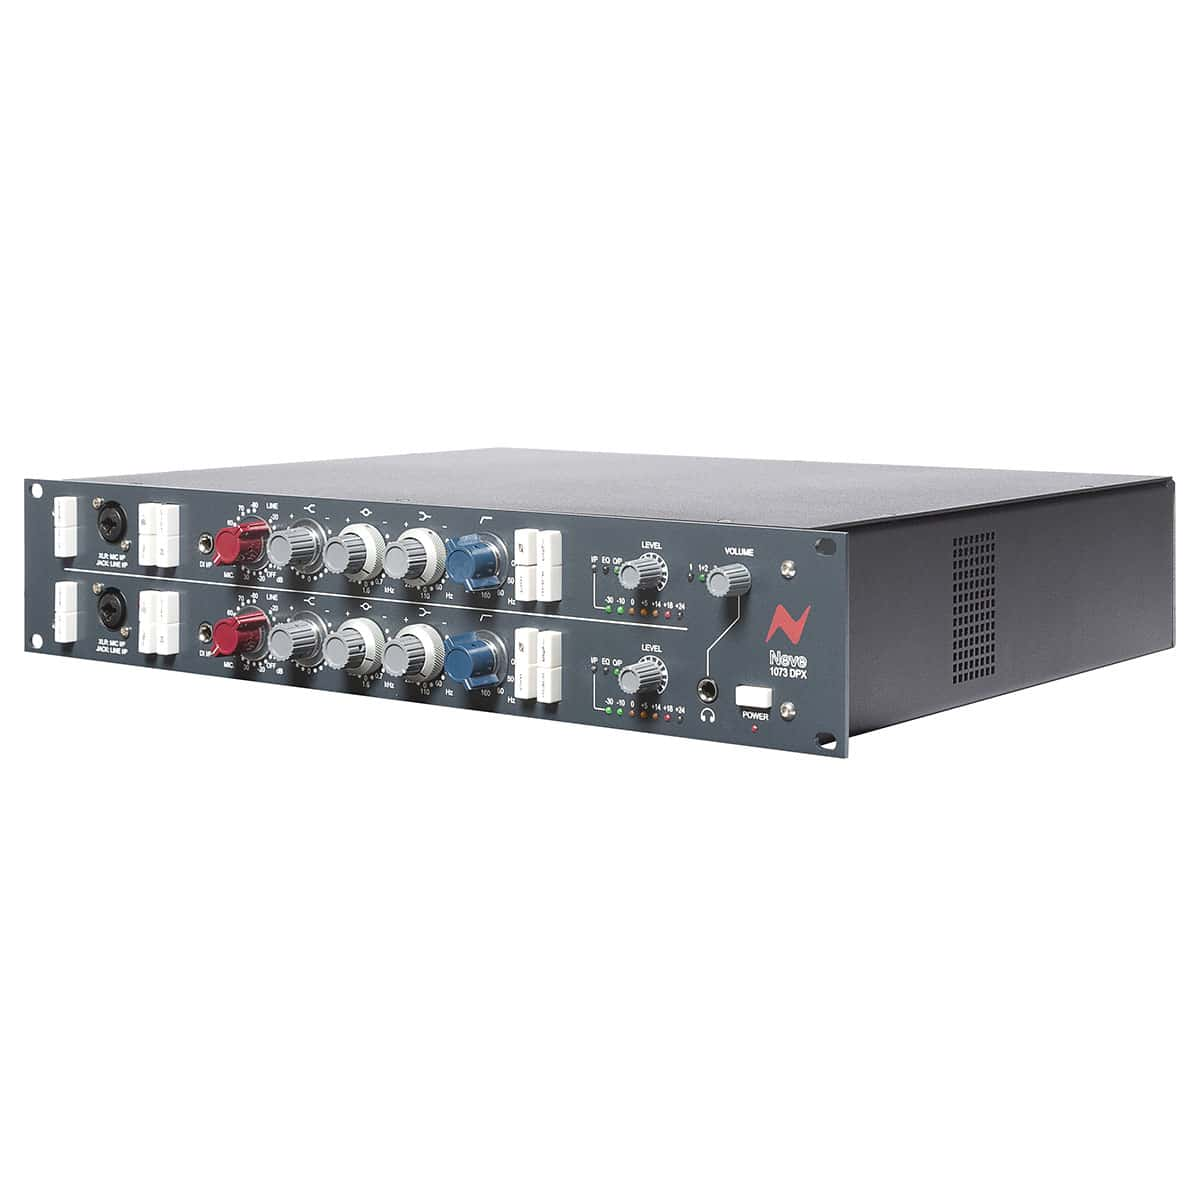 Ams Neve 1073 DPX 04 Neve 1073 DPX